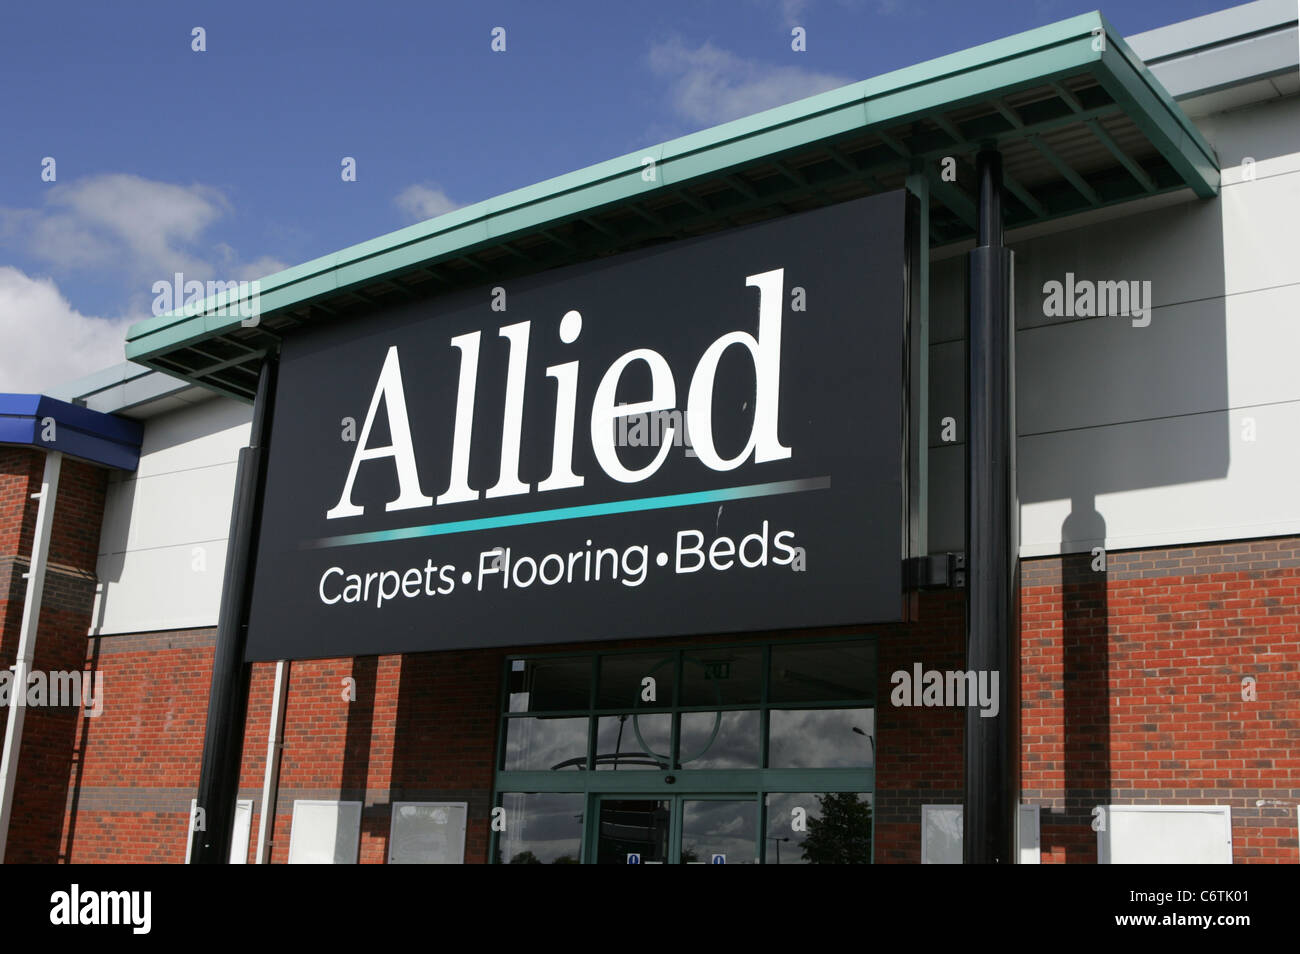 Allied Carpets Floors Beds Front Worcester Uk Stock Image